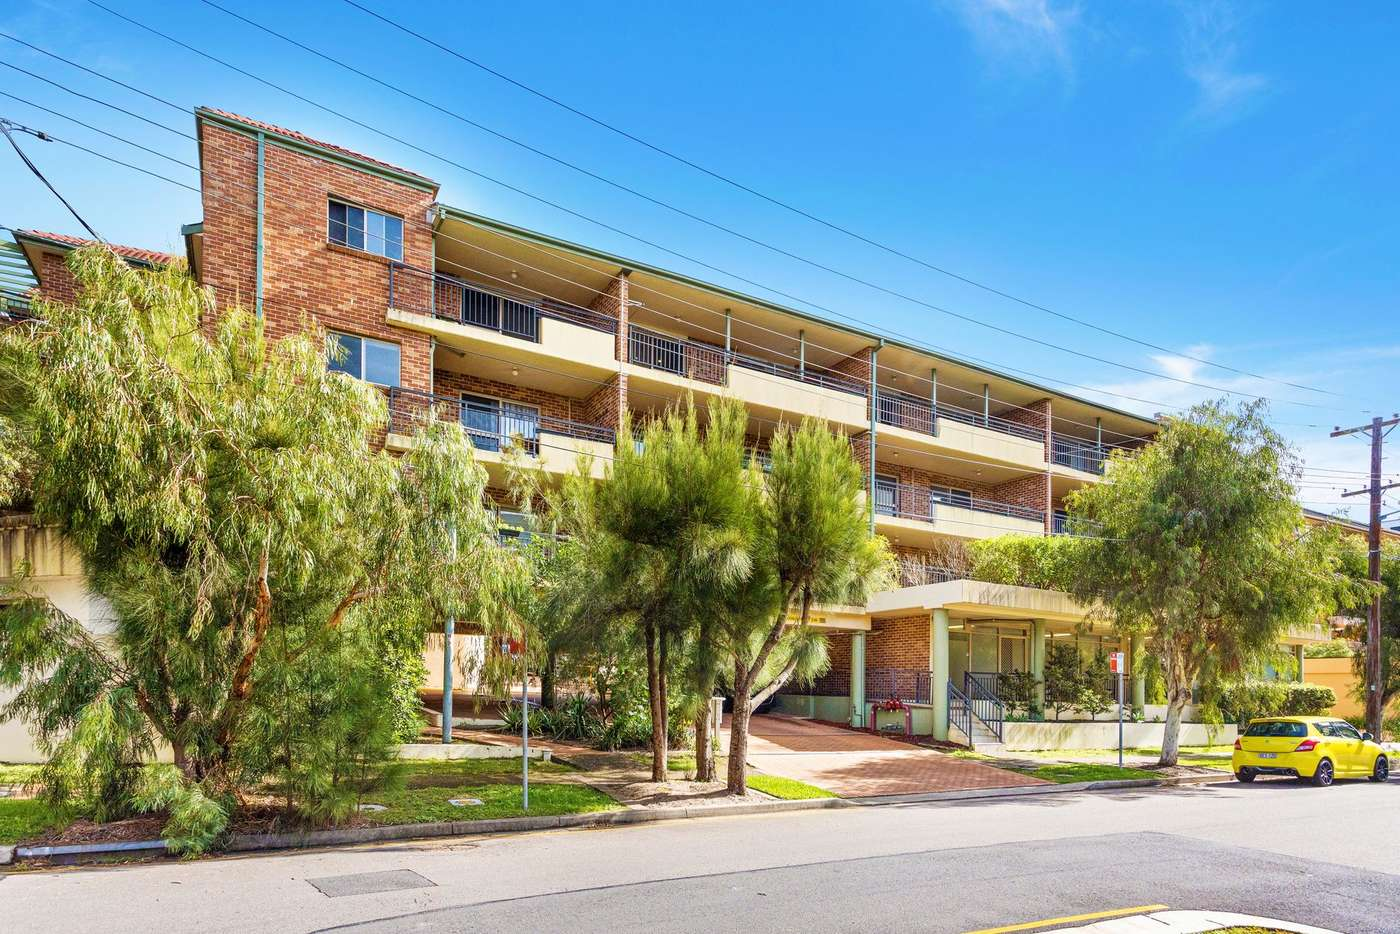 Main view of Homely unit listing, 16/23-29 Gray Street, Sutherland NSW 2232